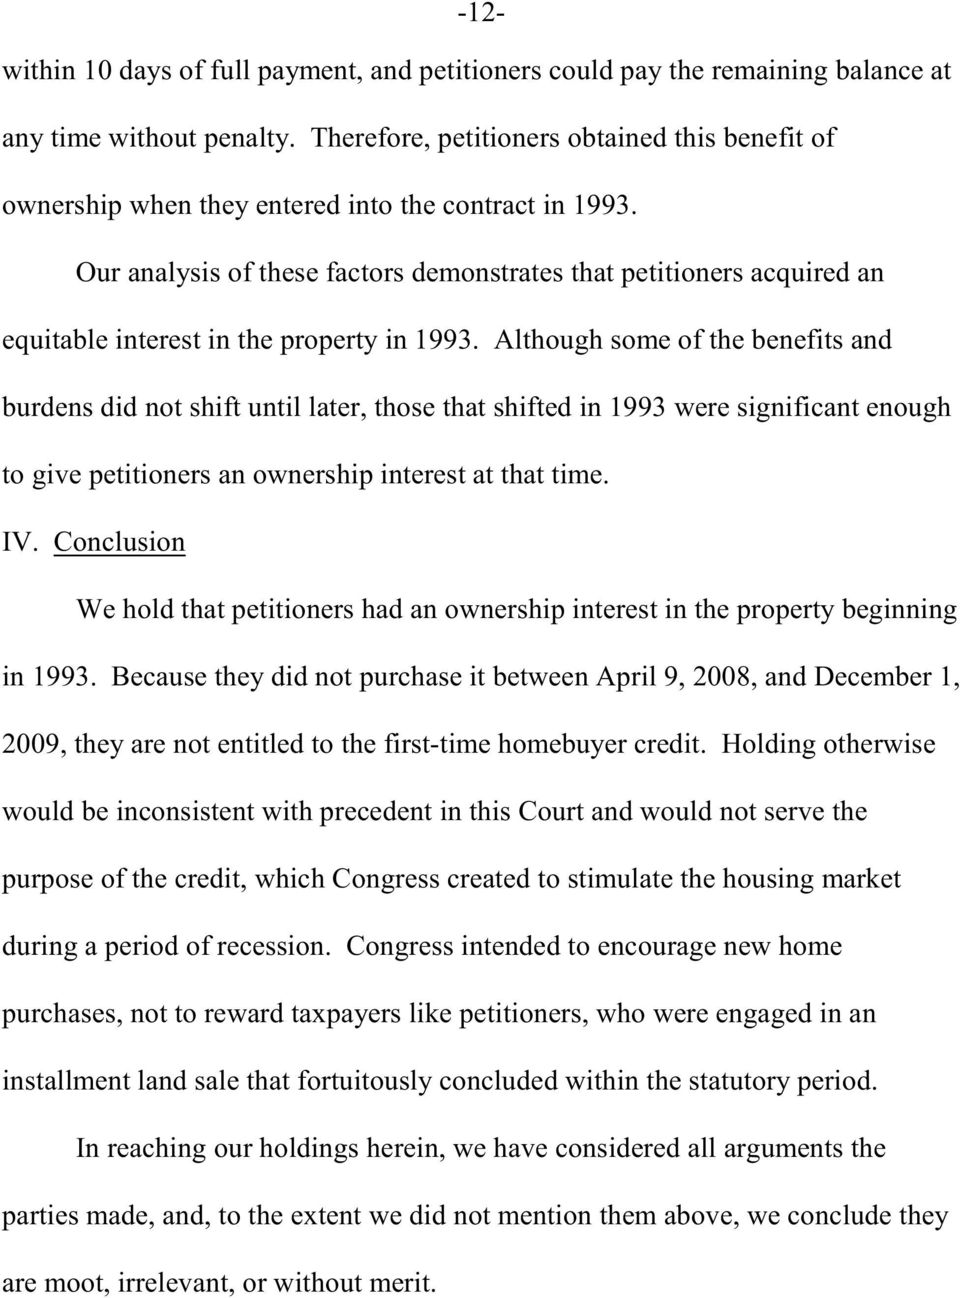 Our analysis of these factors demonstrates that petitioners acquired an equitable interest in the property in 1993.